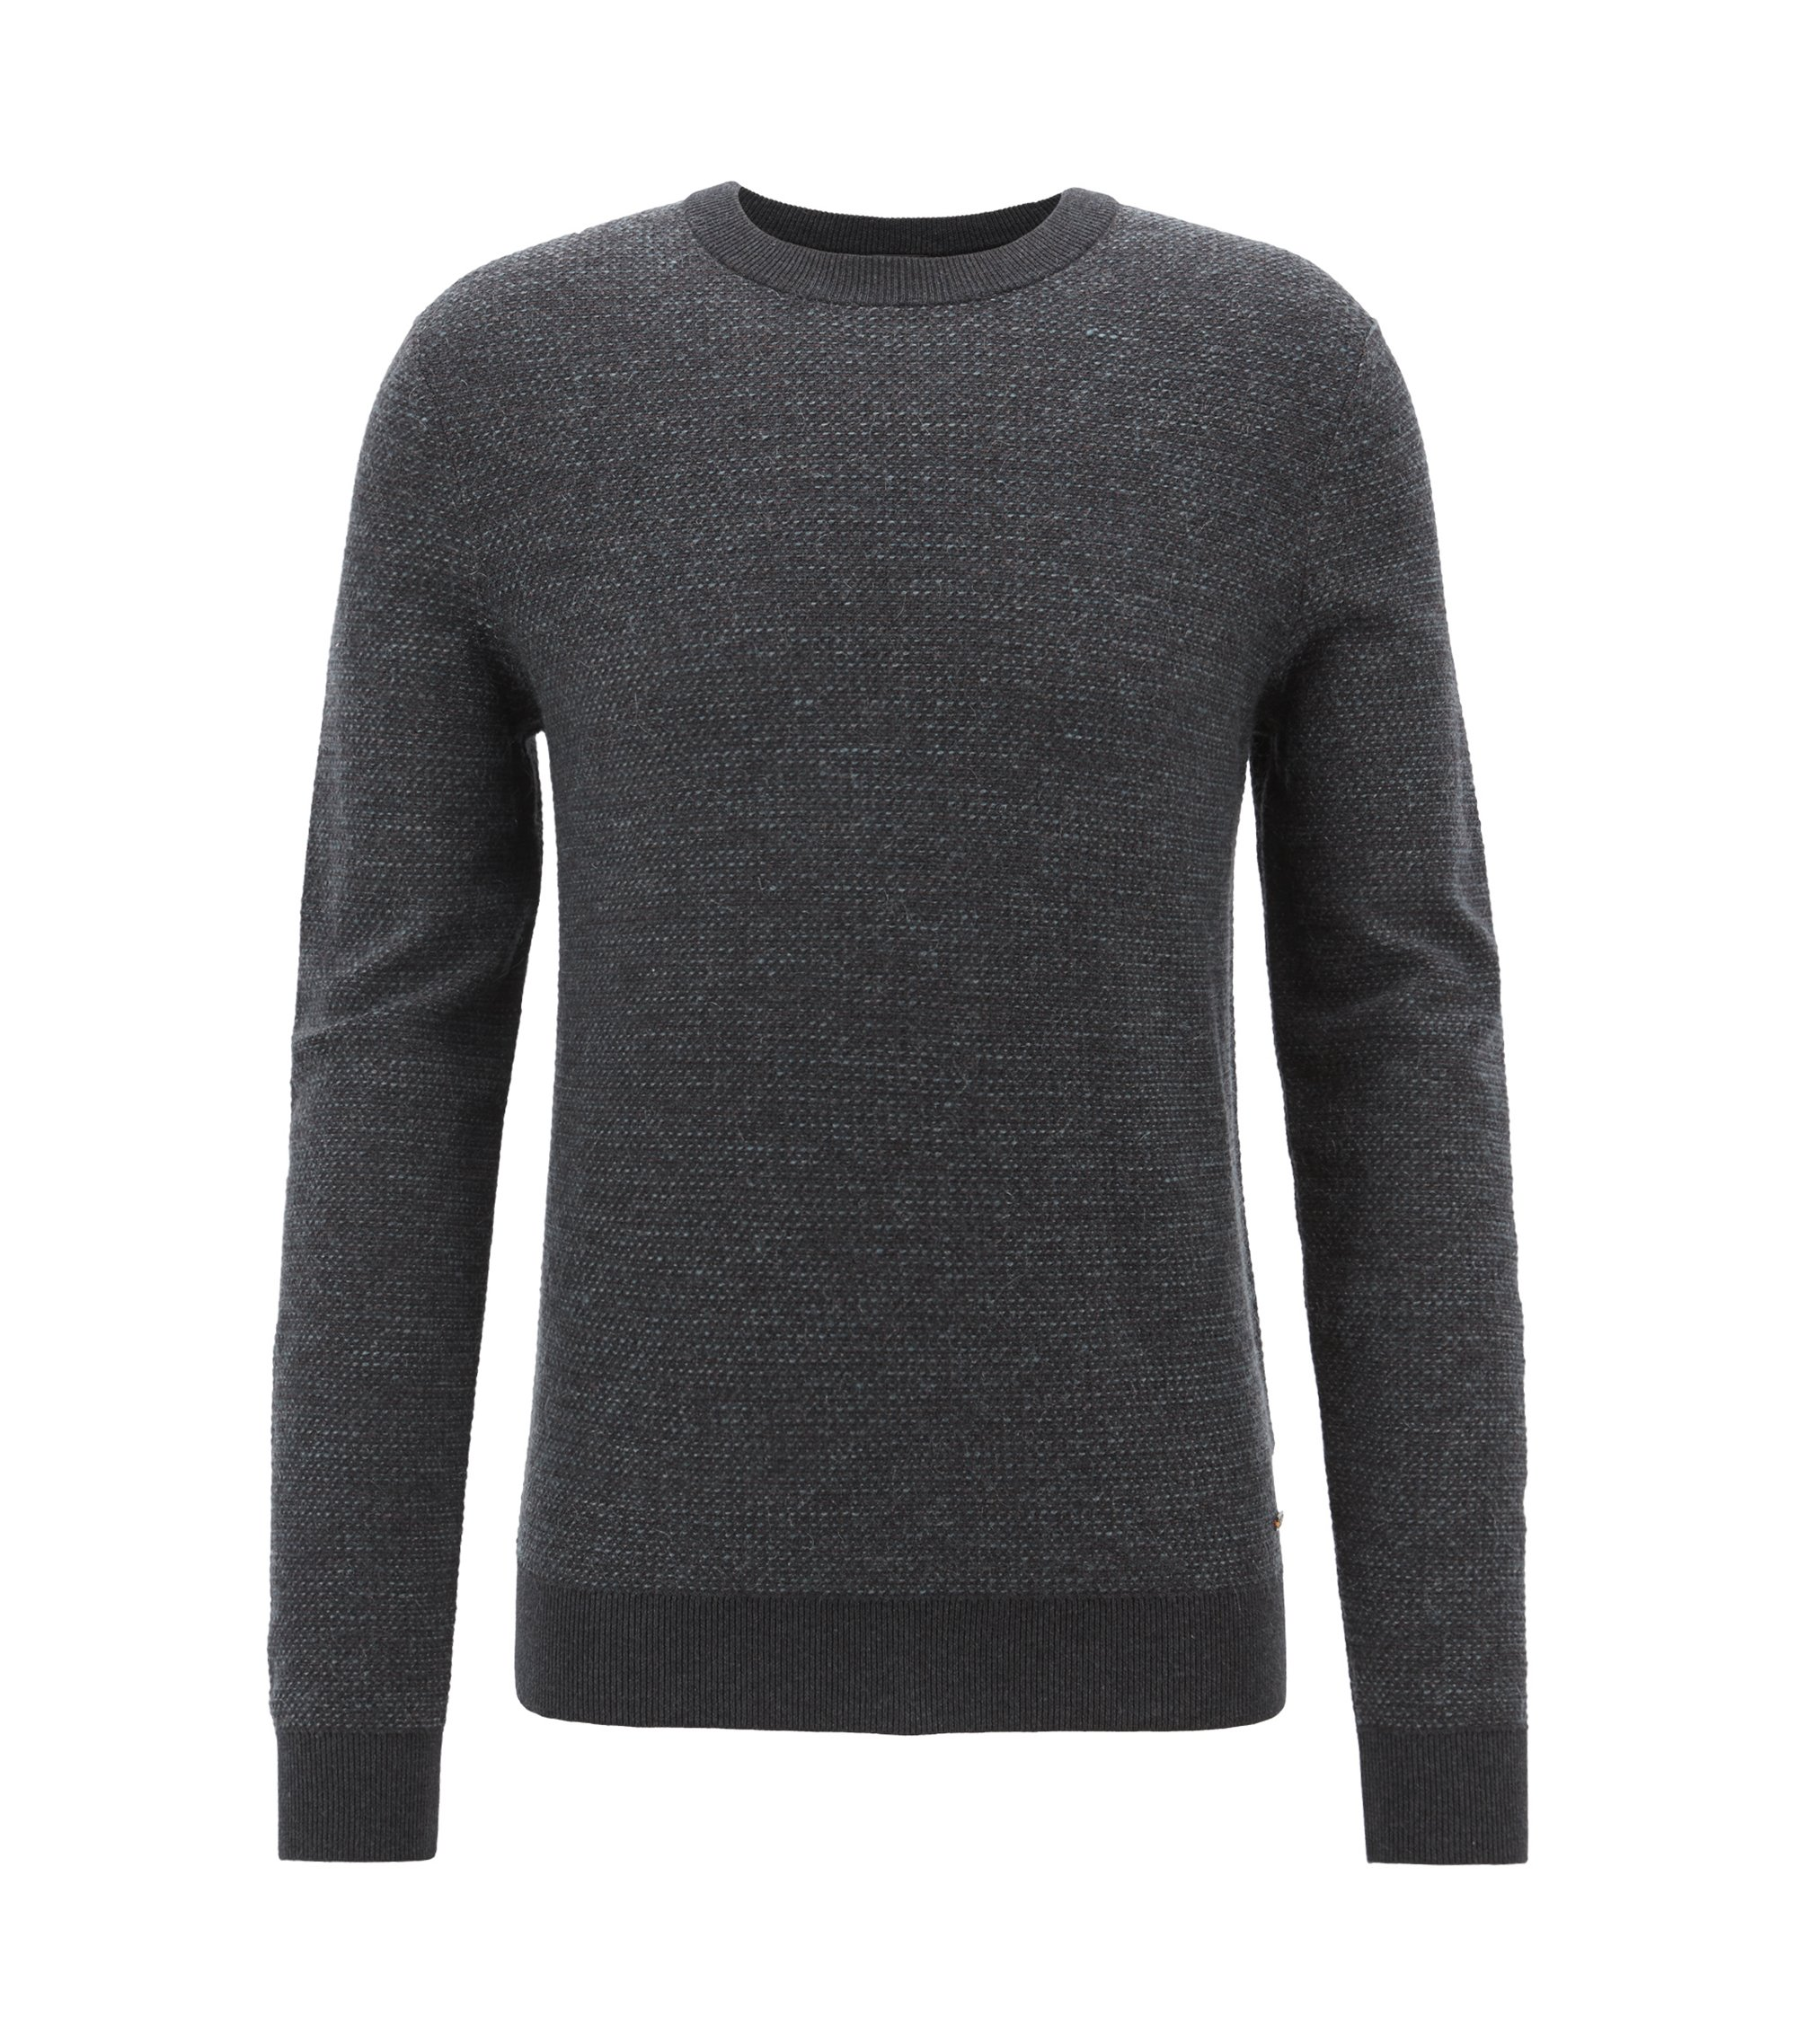 Float-jacquard sweater in a lightweight cotton blend, Black